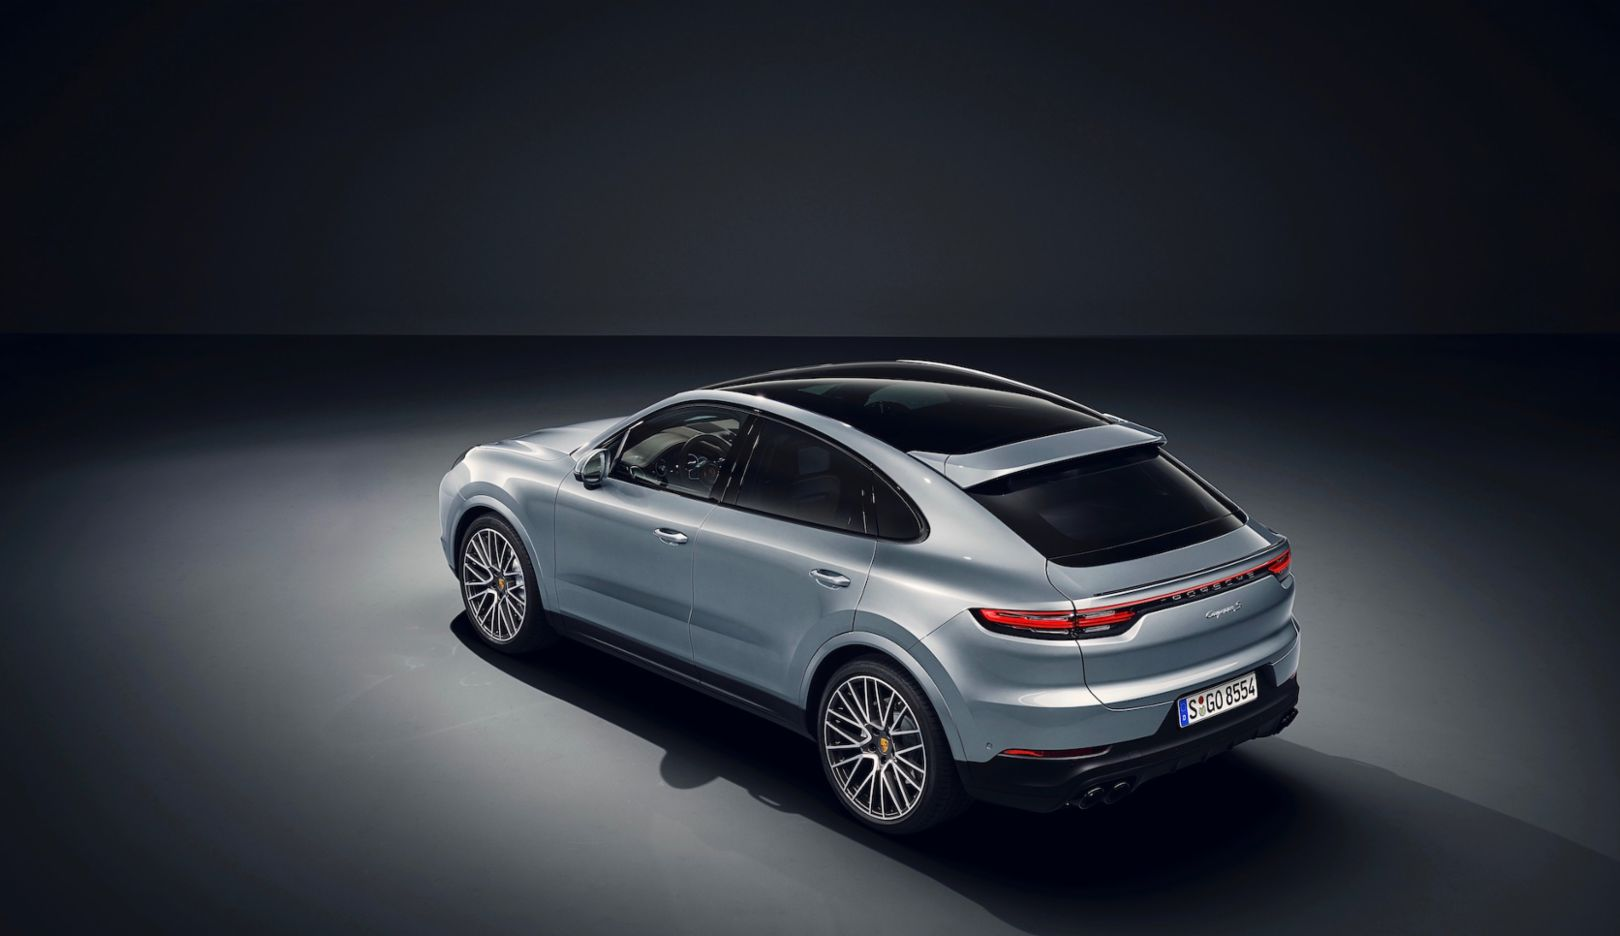 Now Available To Order New Cayenne S Coupe With 440 Ps